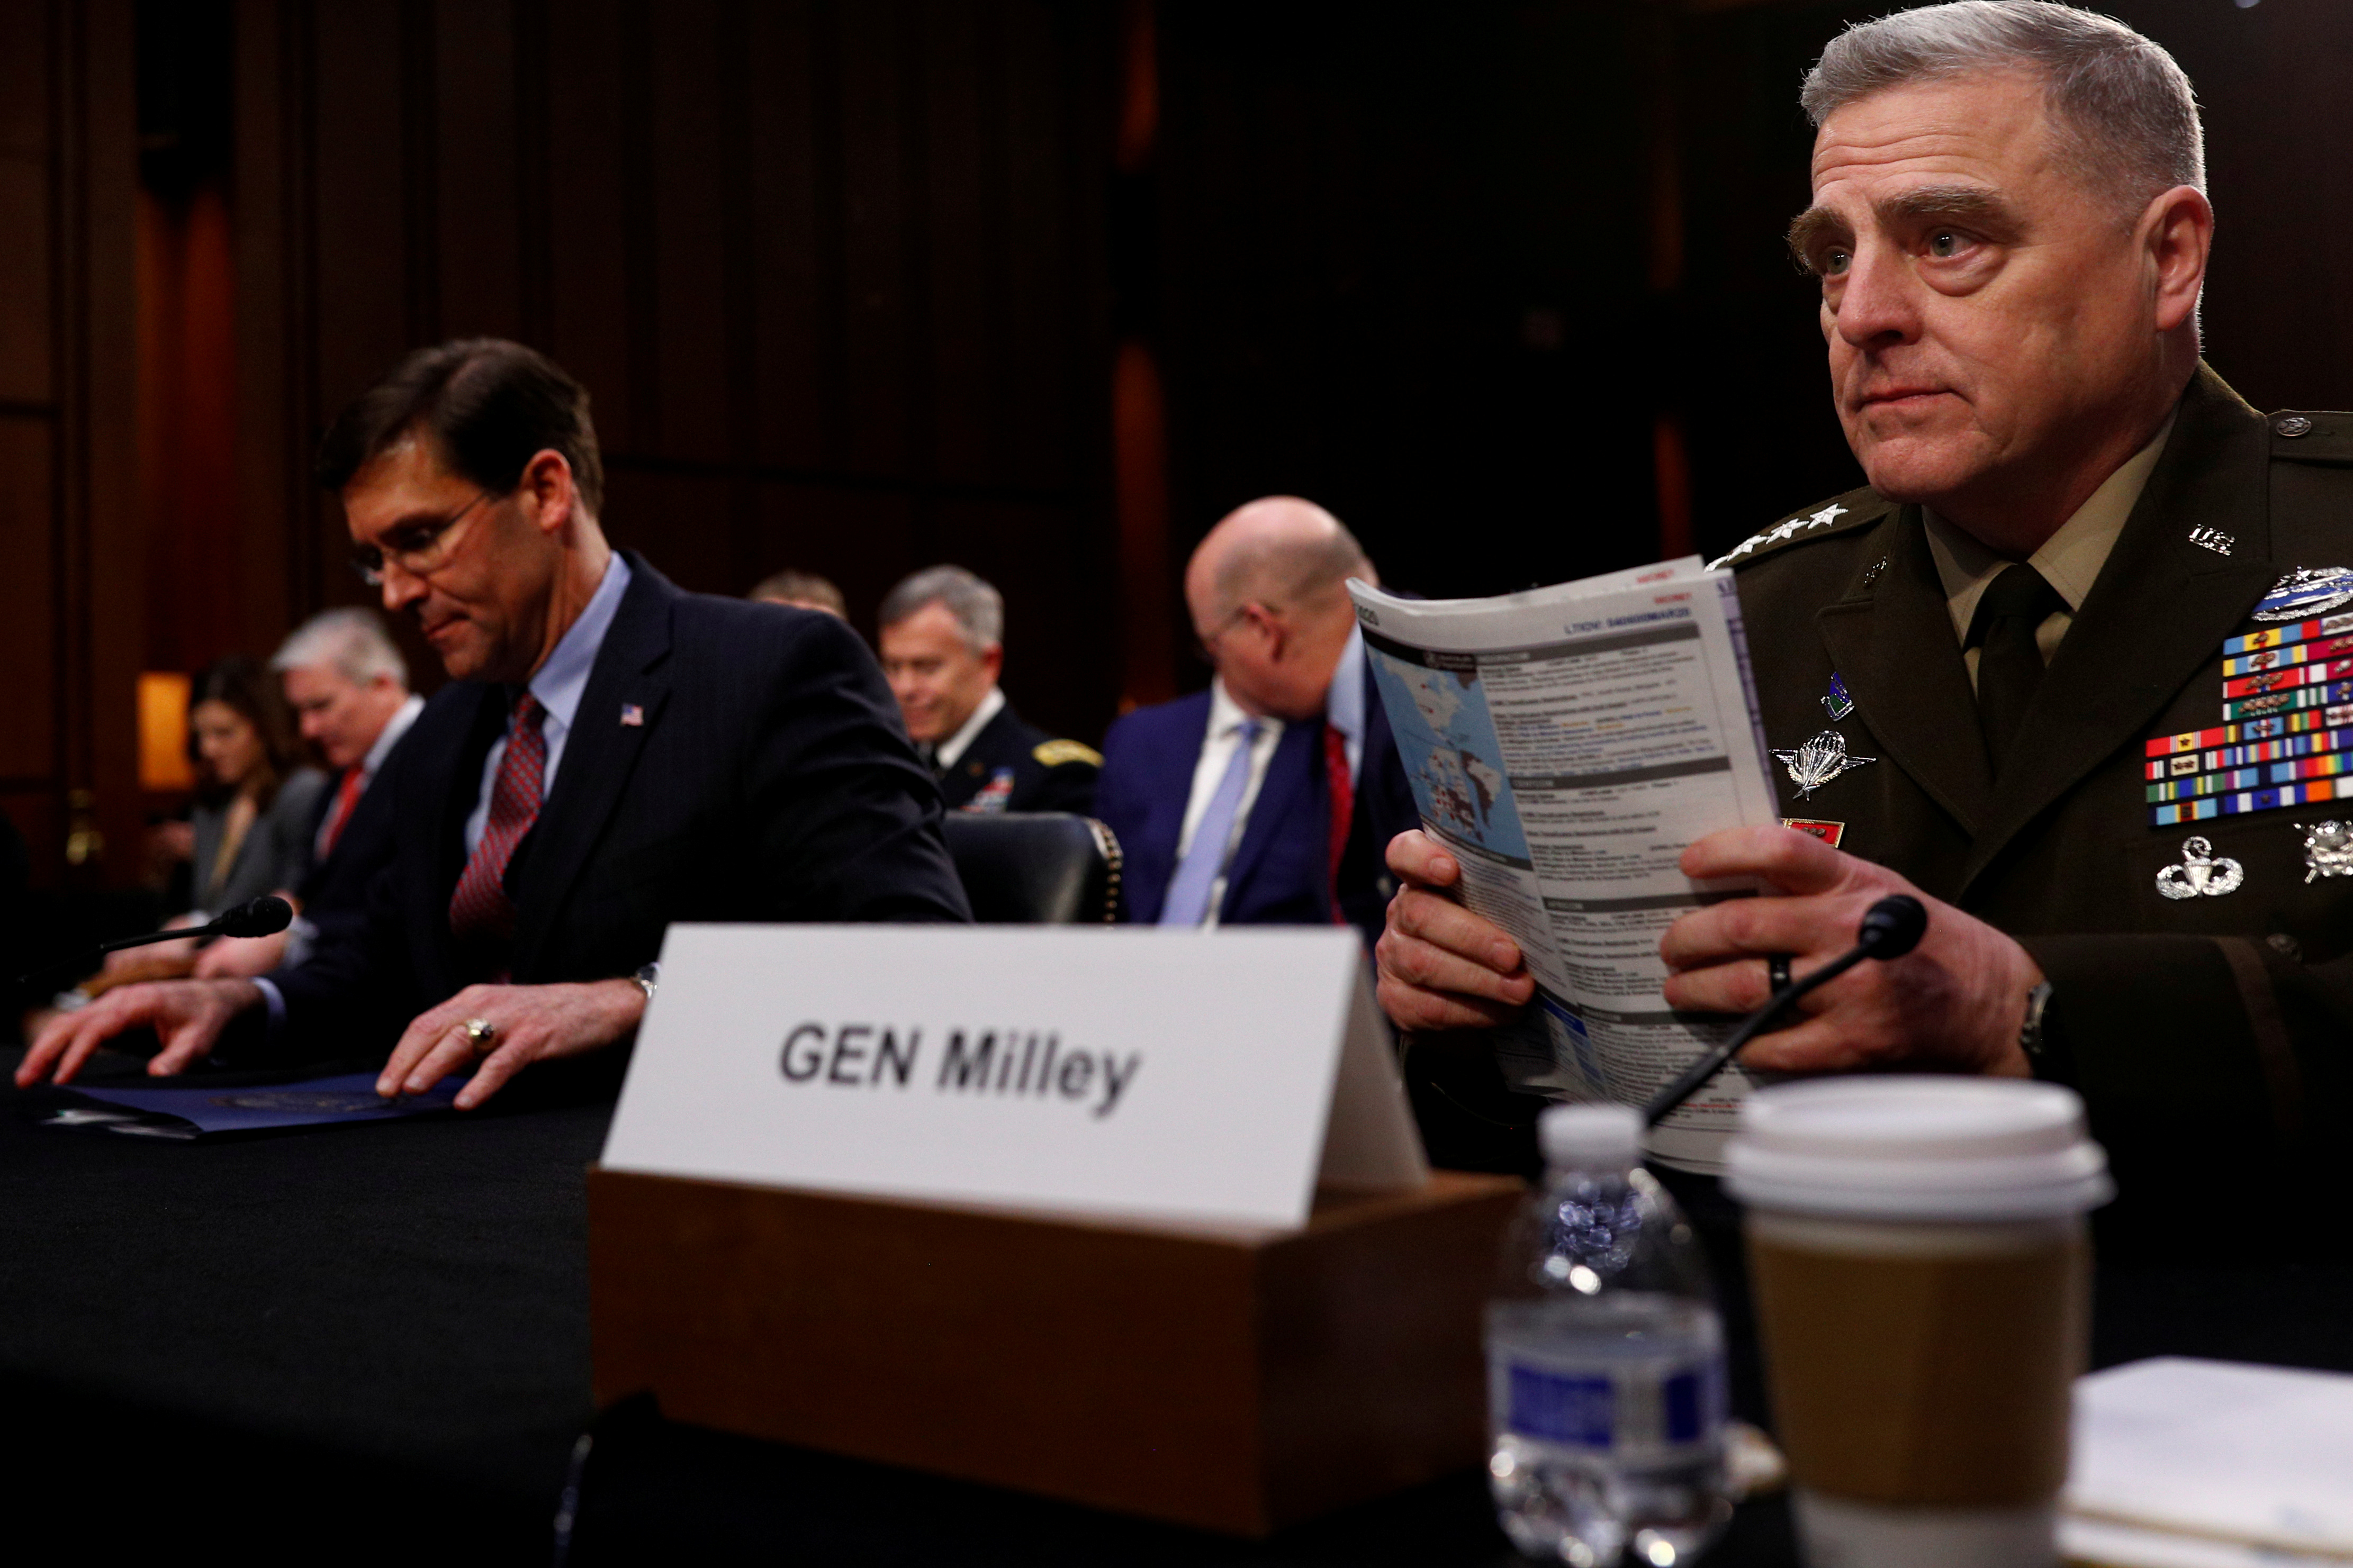 """FILE PHOTO: U.S. Chairman of the Joint Chiefs of Staff Gen. Mark A. Milley testifies beside U.S. Defense Secretary Mark Esper before a Senate Armed Services Committee hearing on """"Department of Defense Budget Posture"""" on Capitol Hill in Washington, U.S., March 4, 2020.  REUTERS/Tom Brenner/File Photo"""